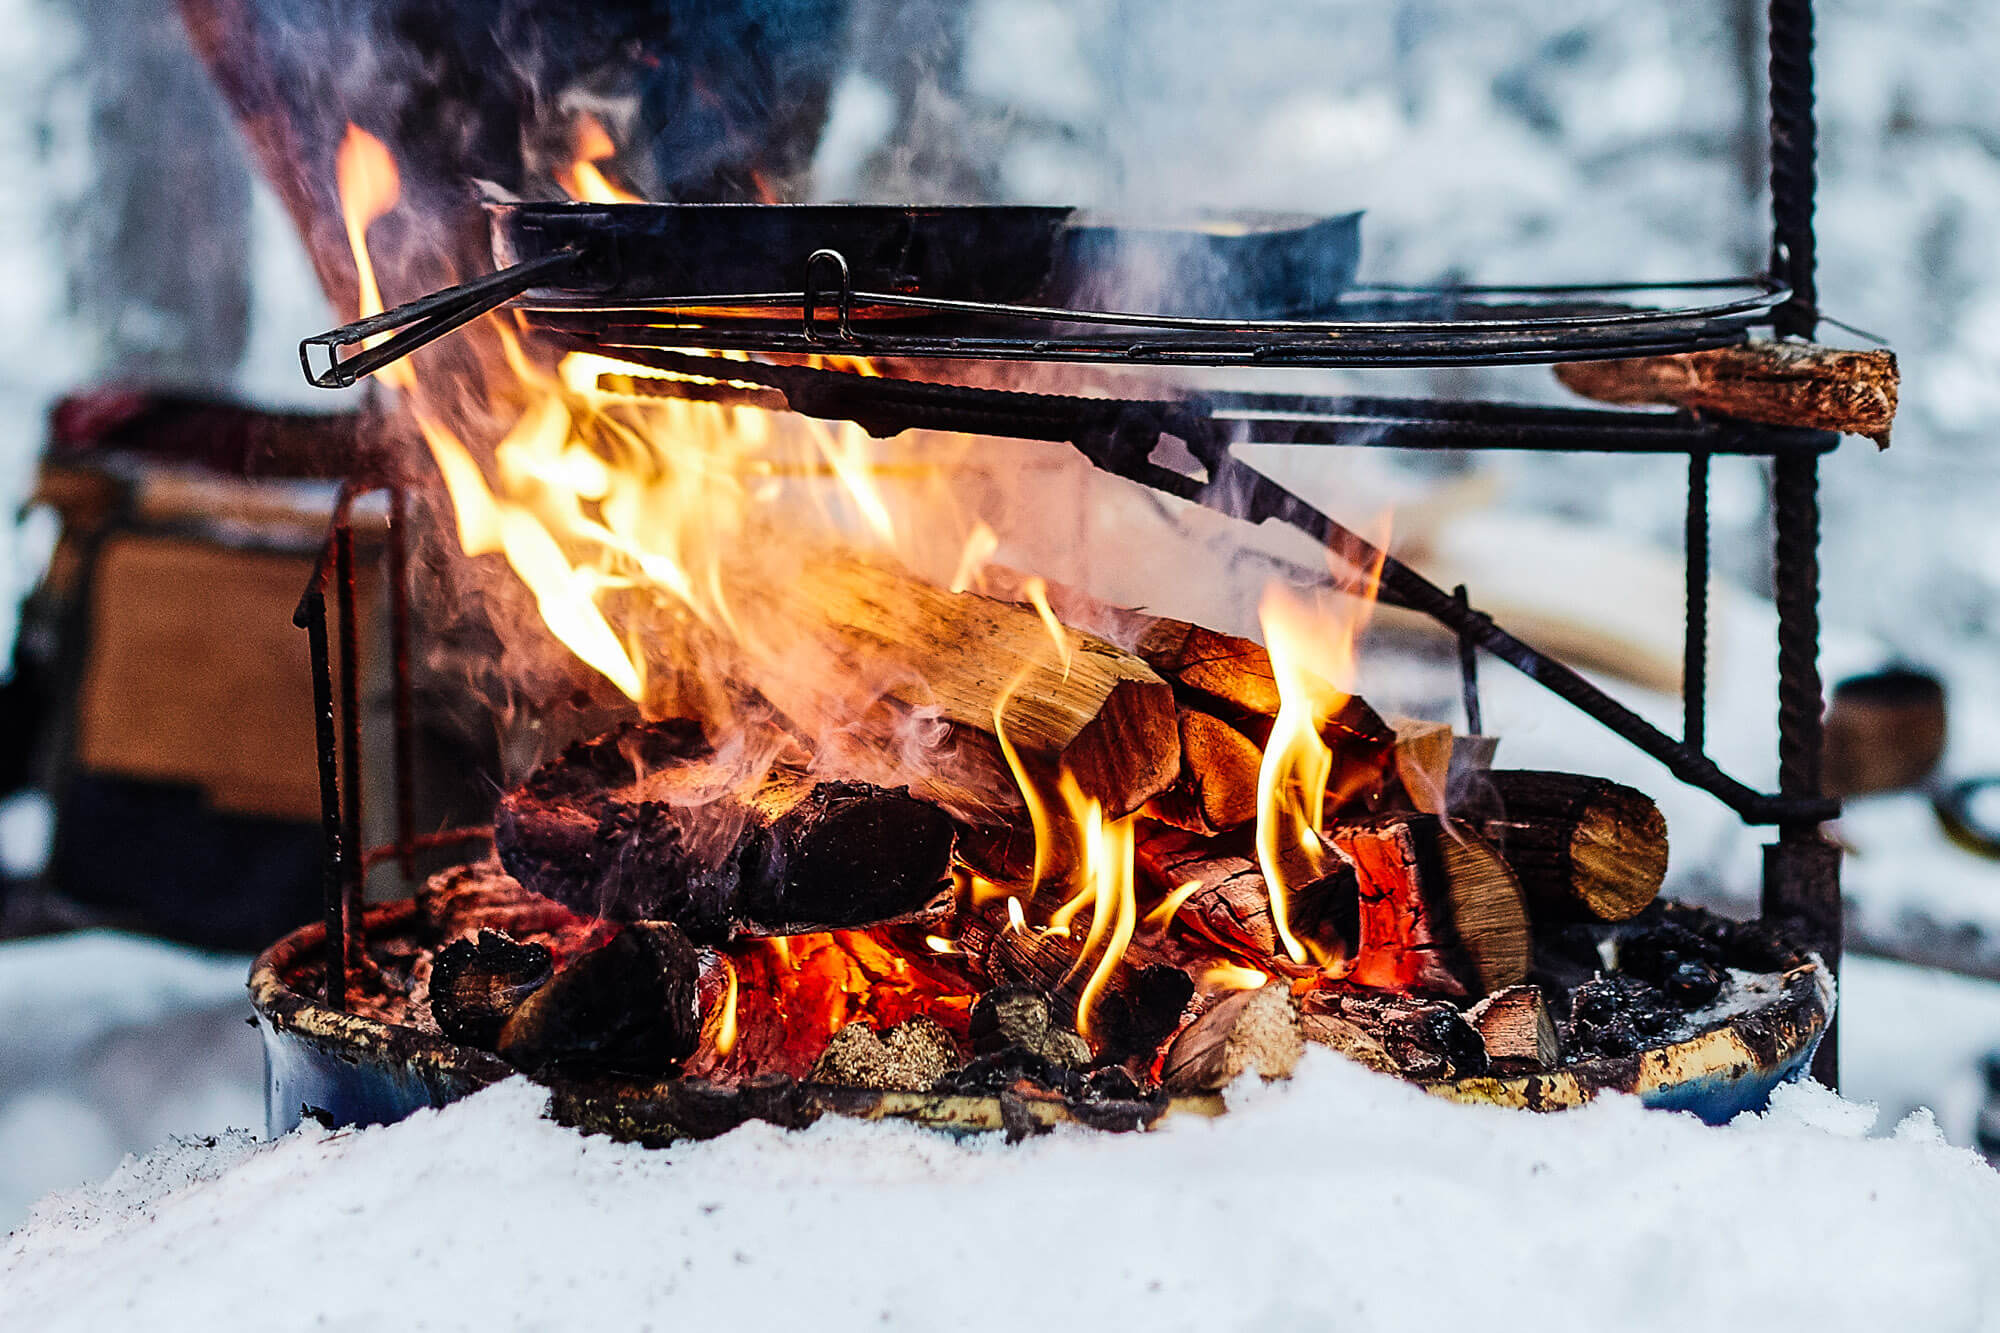 Cooking on the fire in Swedish Lapland